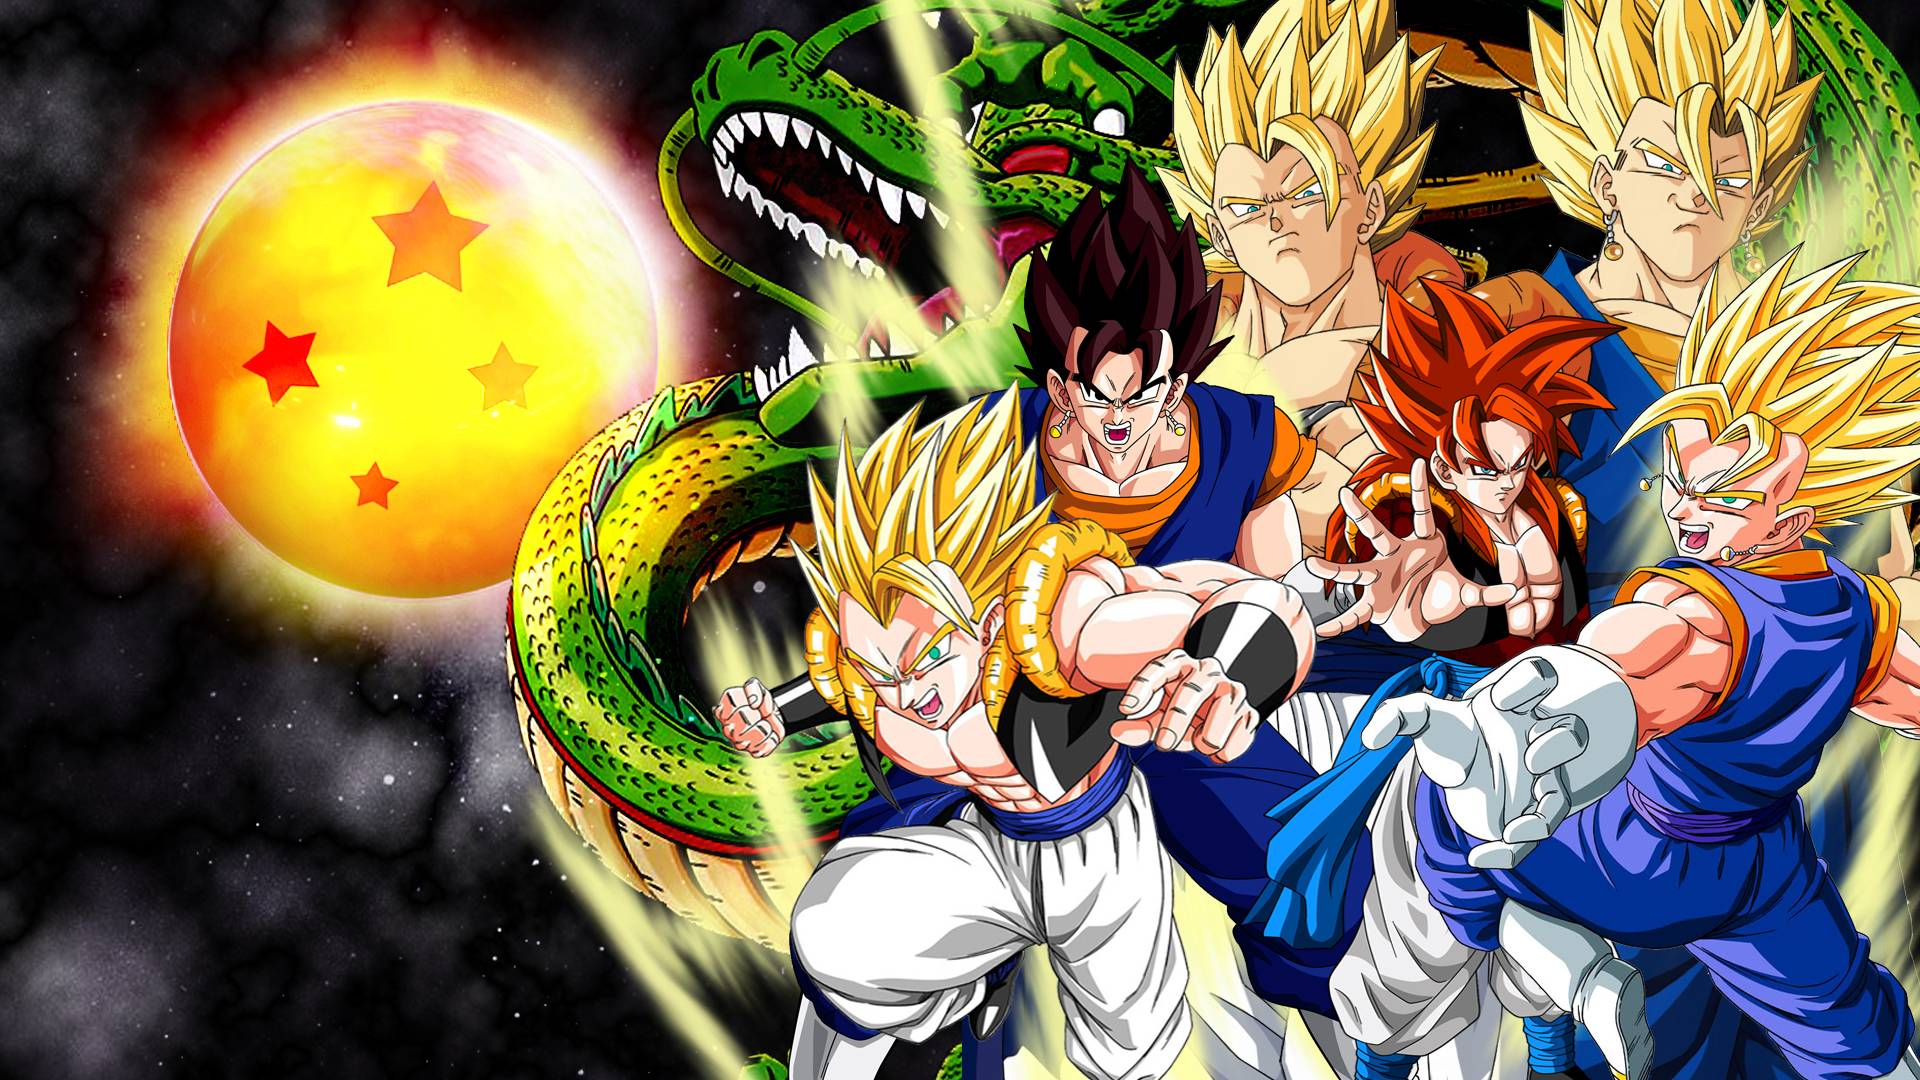 Dragon ball z wallpapers wallpaper cave for Chambre dragon ball z